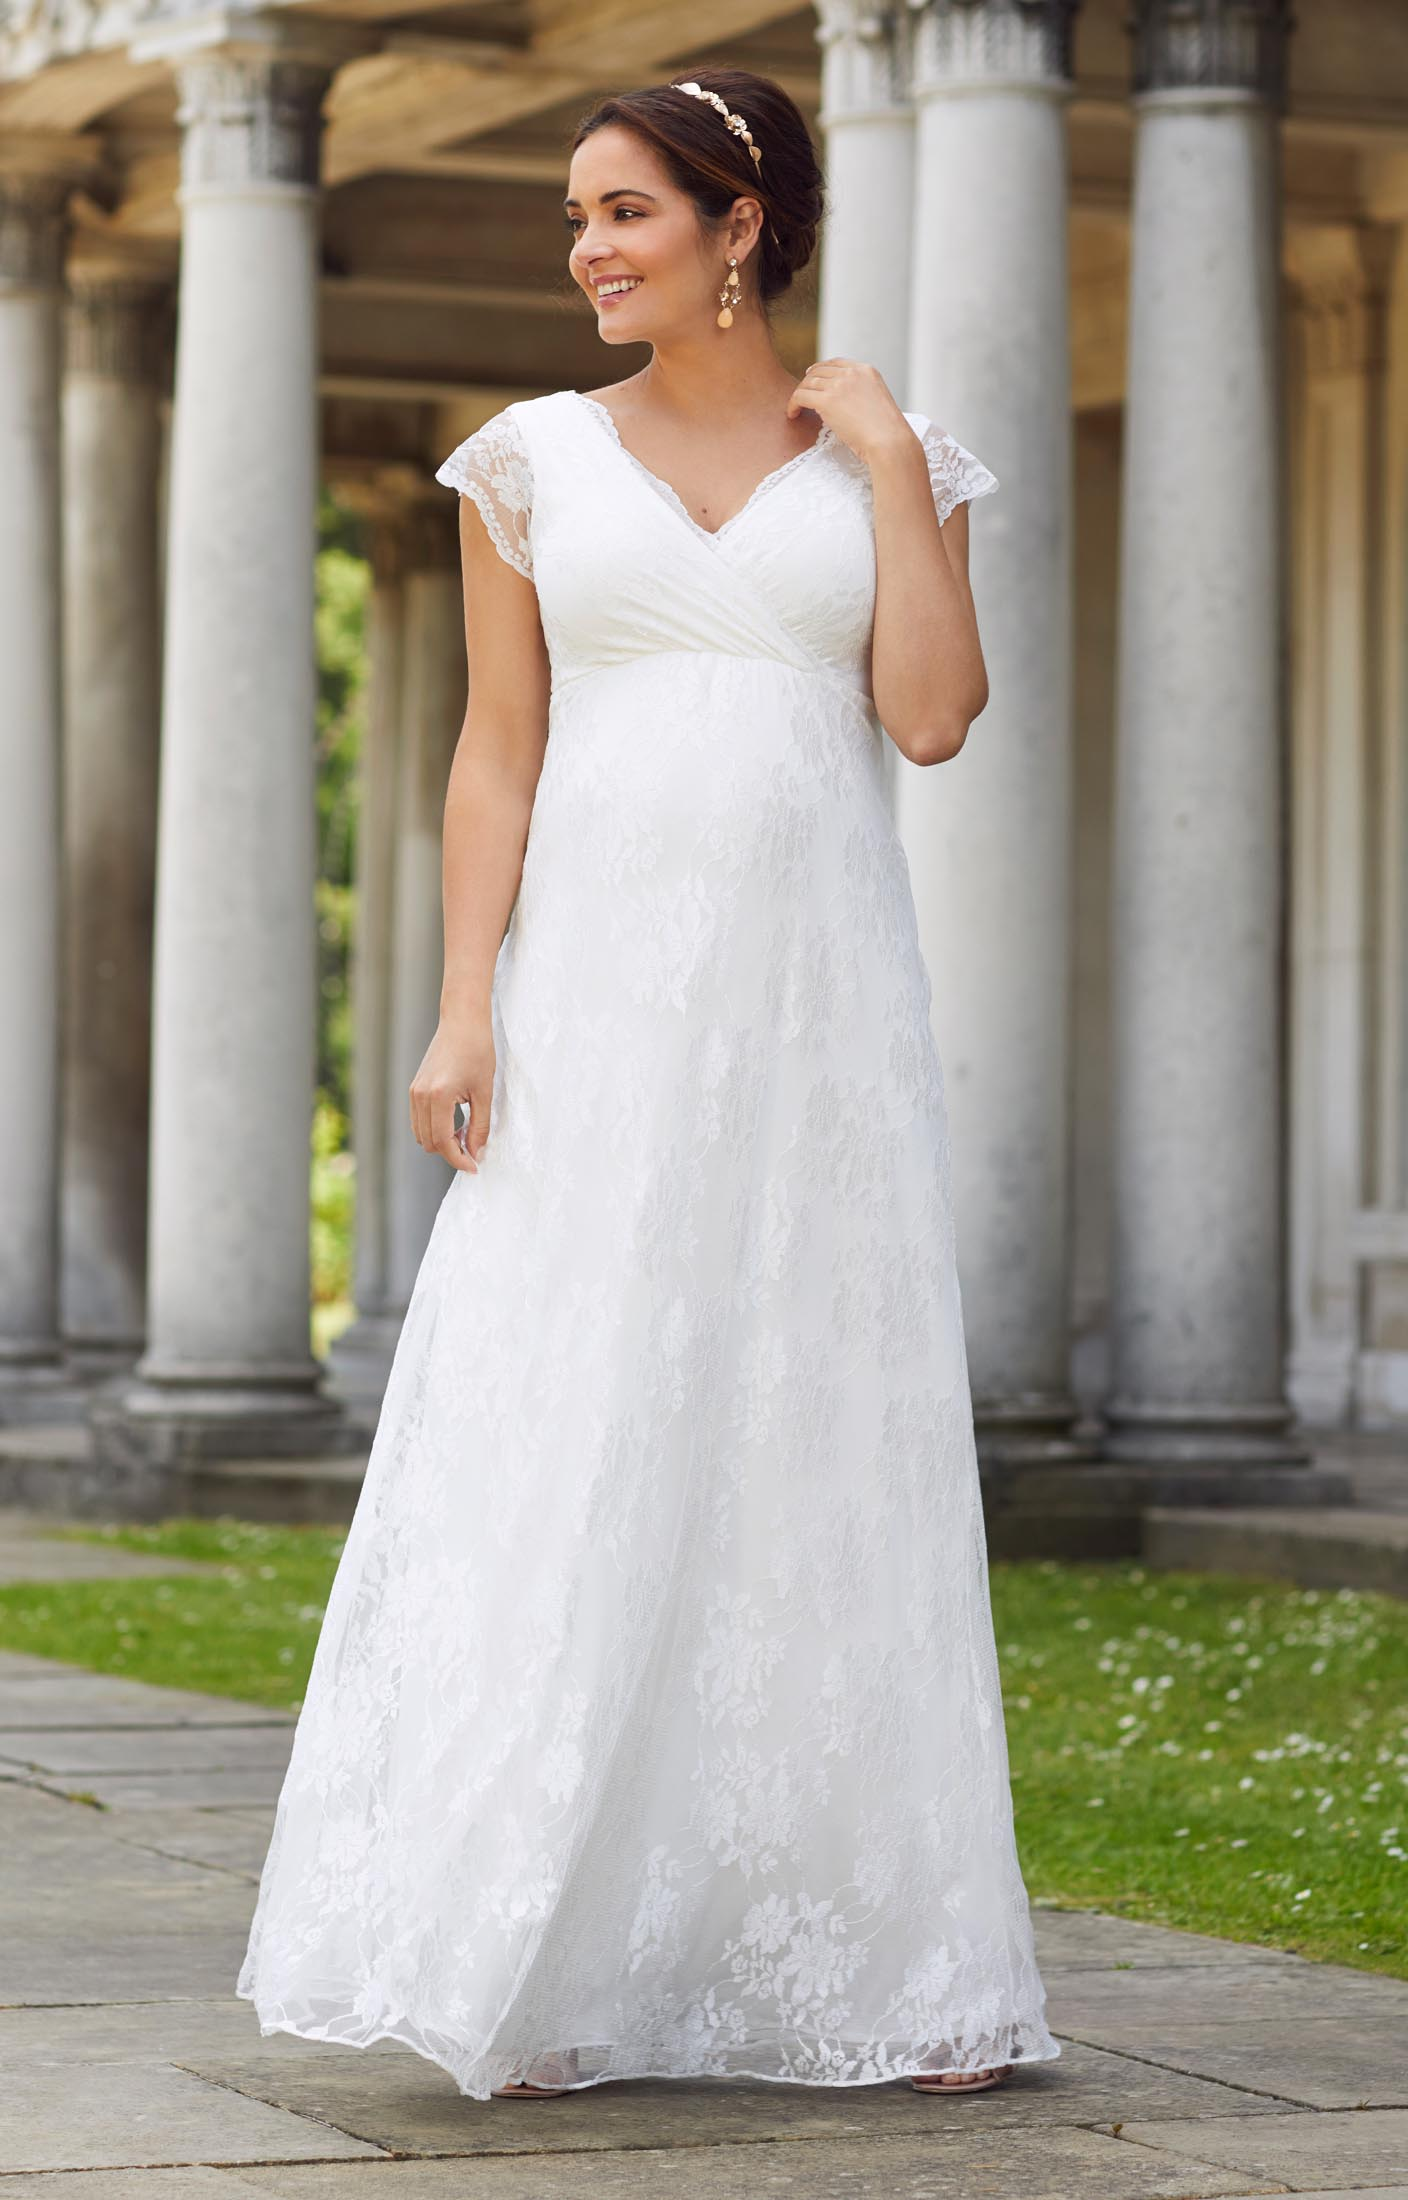 f1840e2f32e93 Eden Maternity Wedding Gown Long (Ivory Dream) - Maternity Wedding ...